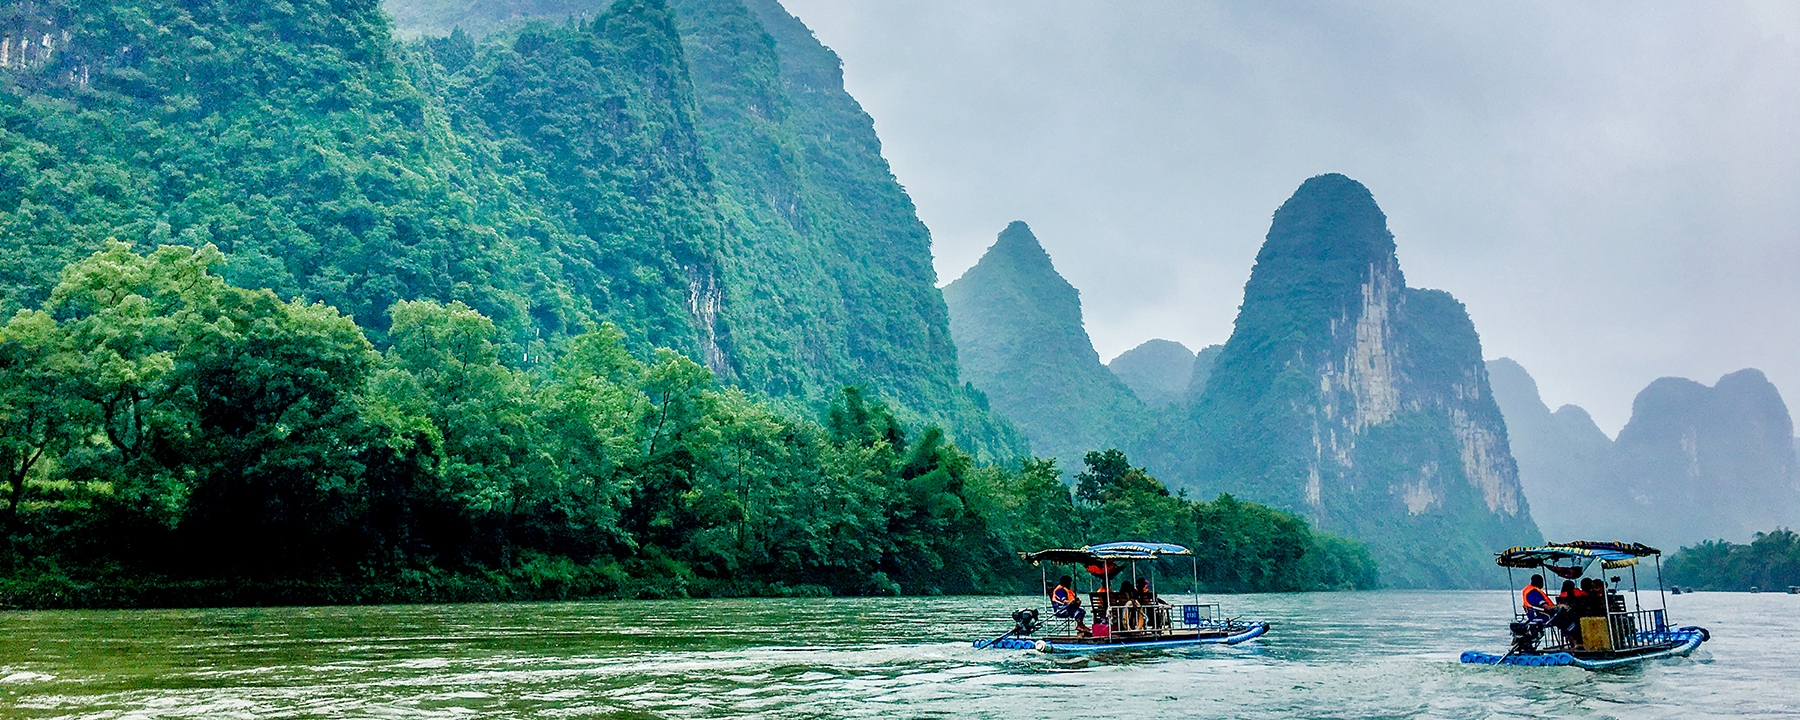 Guilin Li River and Yangtze Cruise Tour